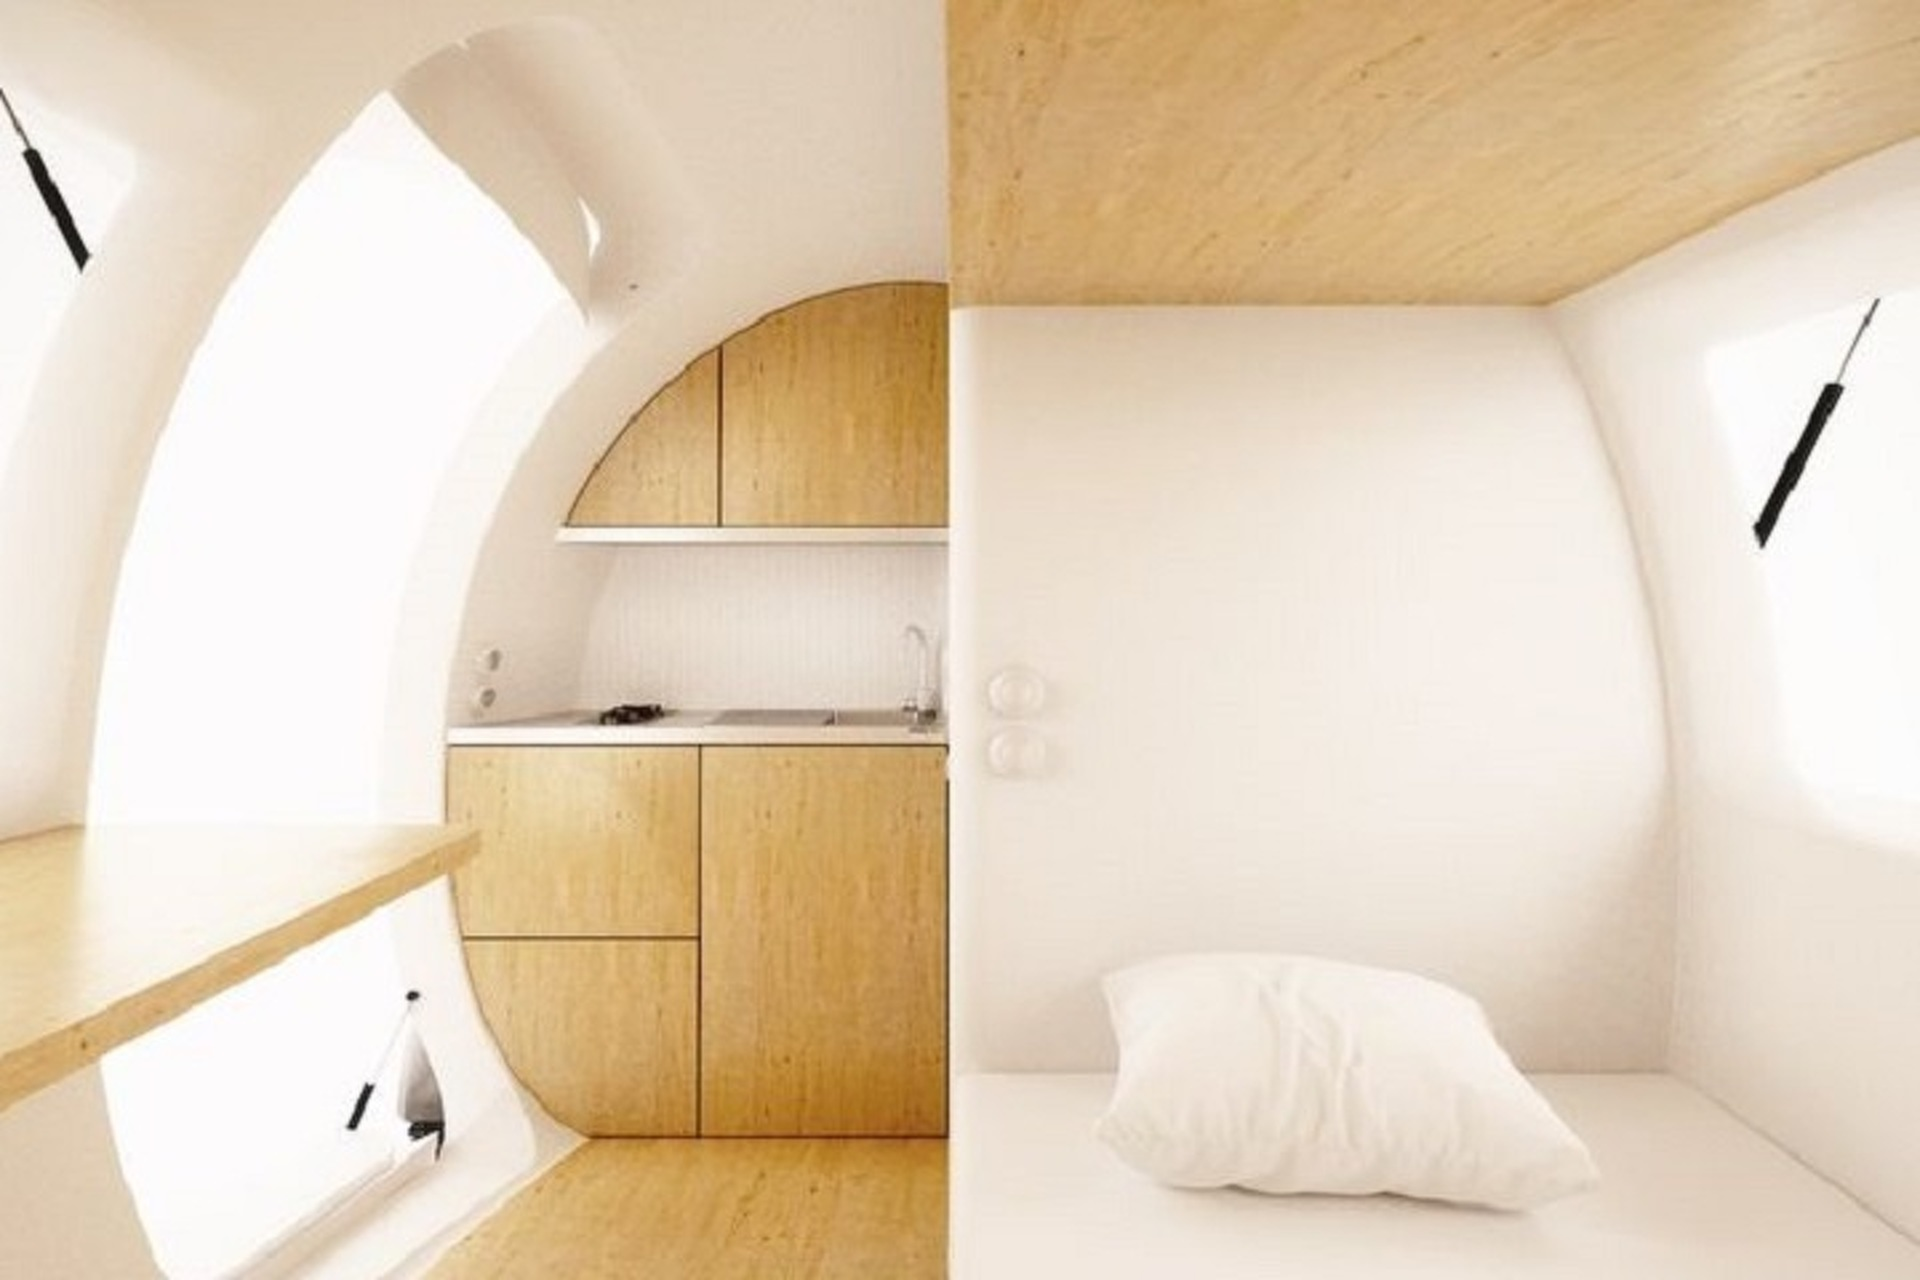 The Innovative Ecocapsule Lets You Live Completely Off the Grid